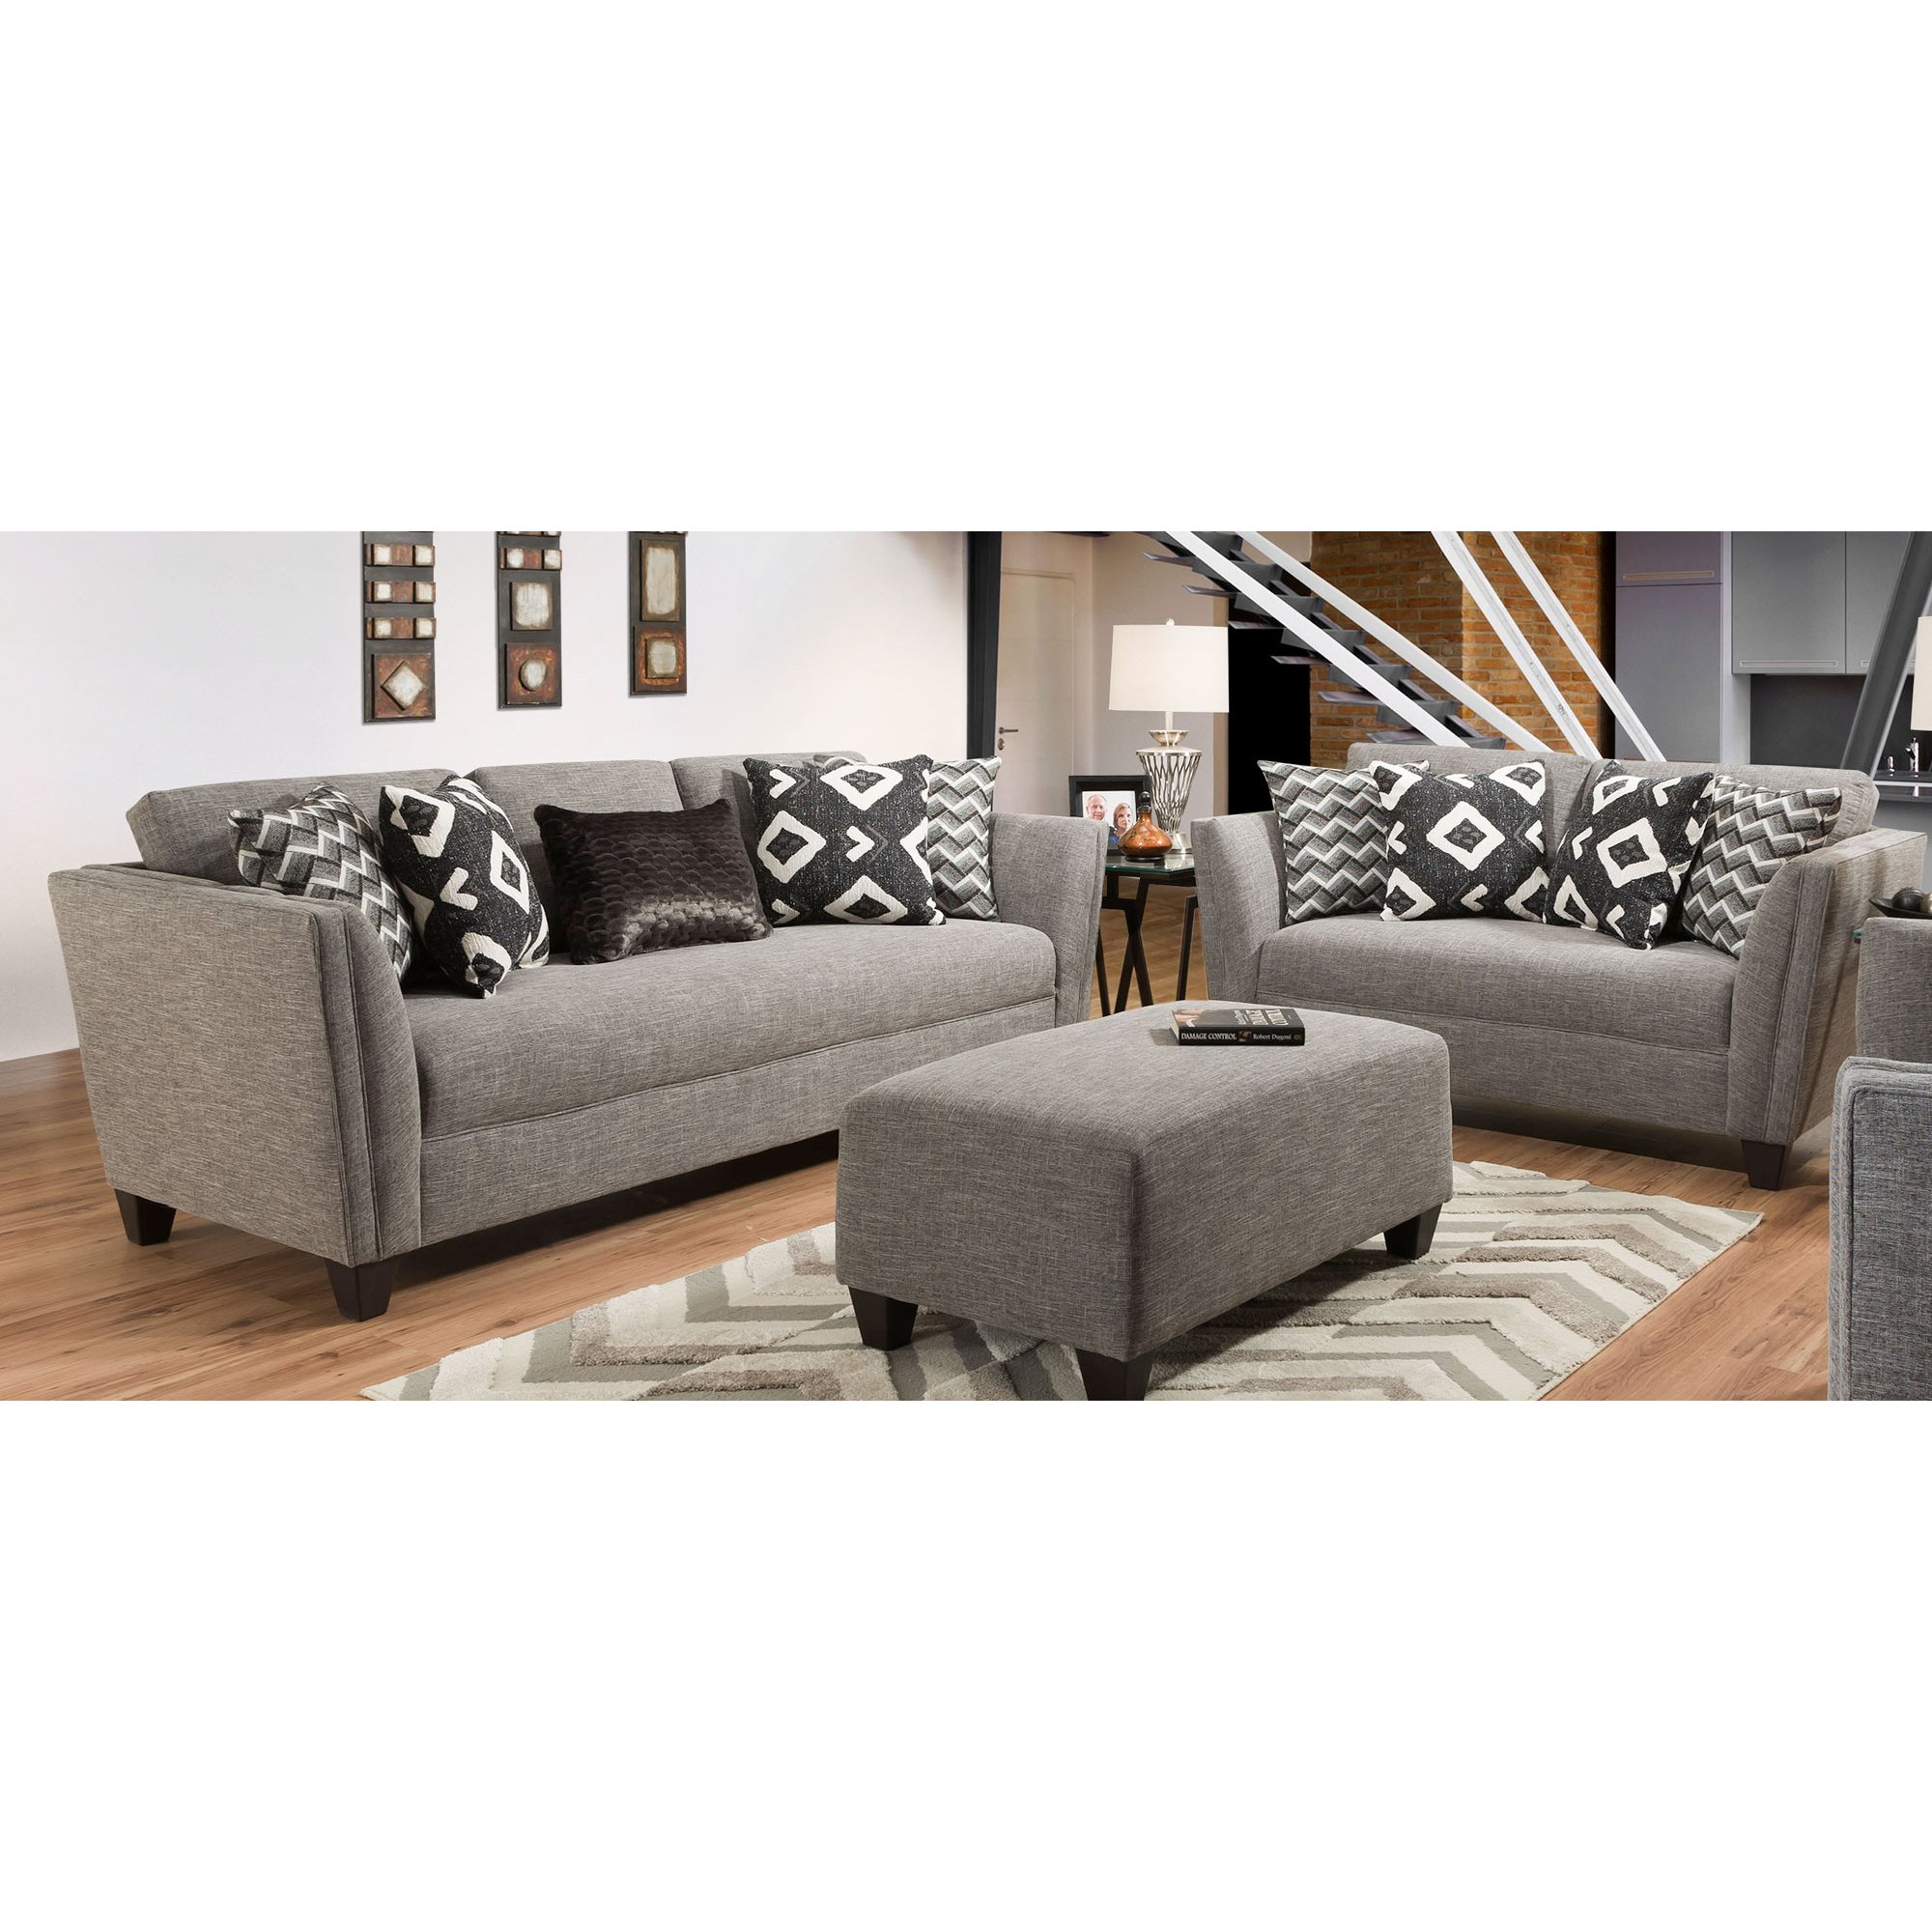 living kenzel mmfurniture by pin com from room benchcraft charcoal buy set